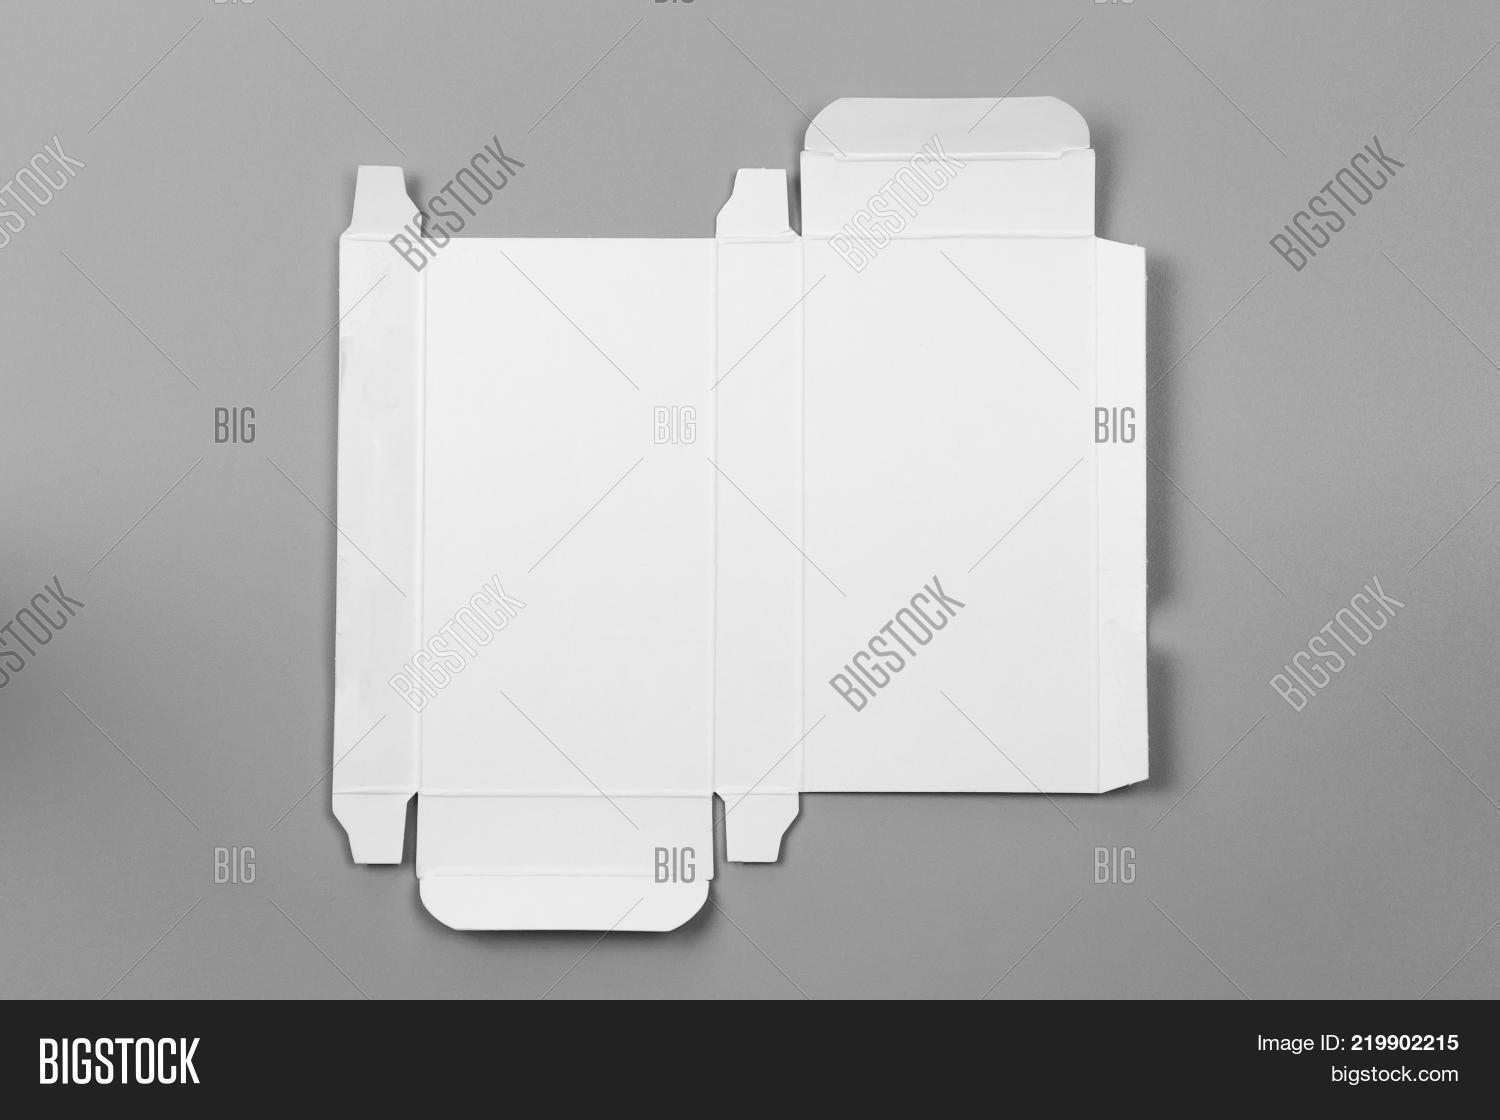 Mockup blueprint image photo free trial bigstock mockup blueprint template of white paper box packaging on gray background old cardboard with die malvernweather Gallery